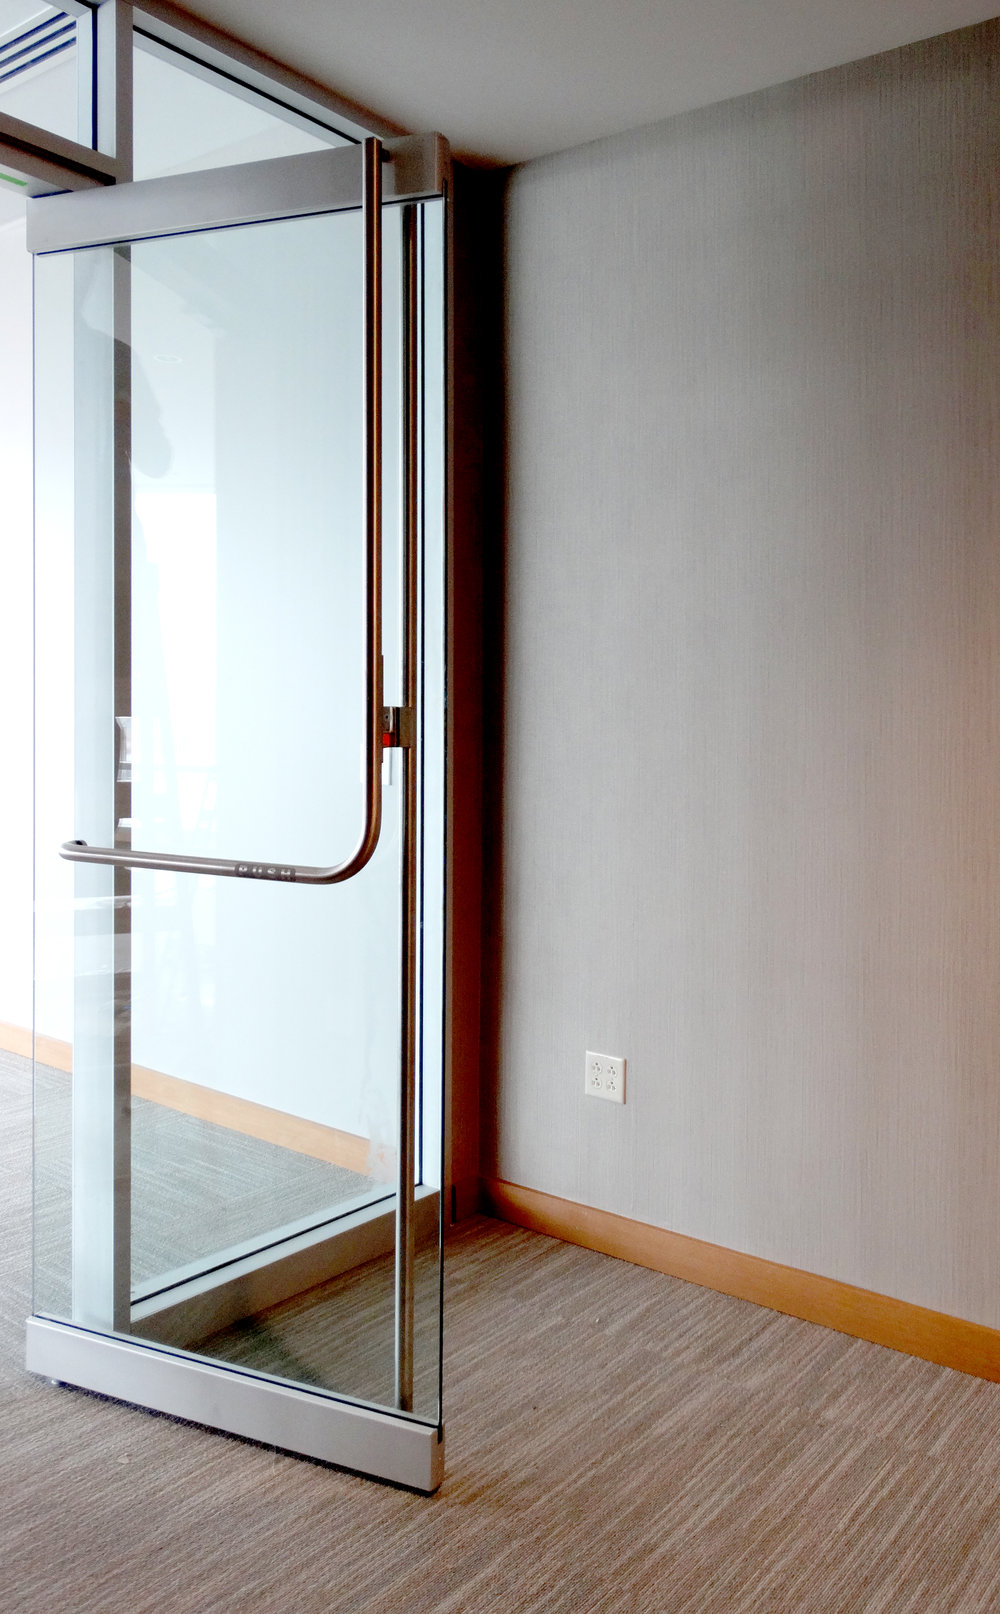 Encase Frameless Glass Panic Hardware Rail Door Transom - Spaceworks AI.jpg